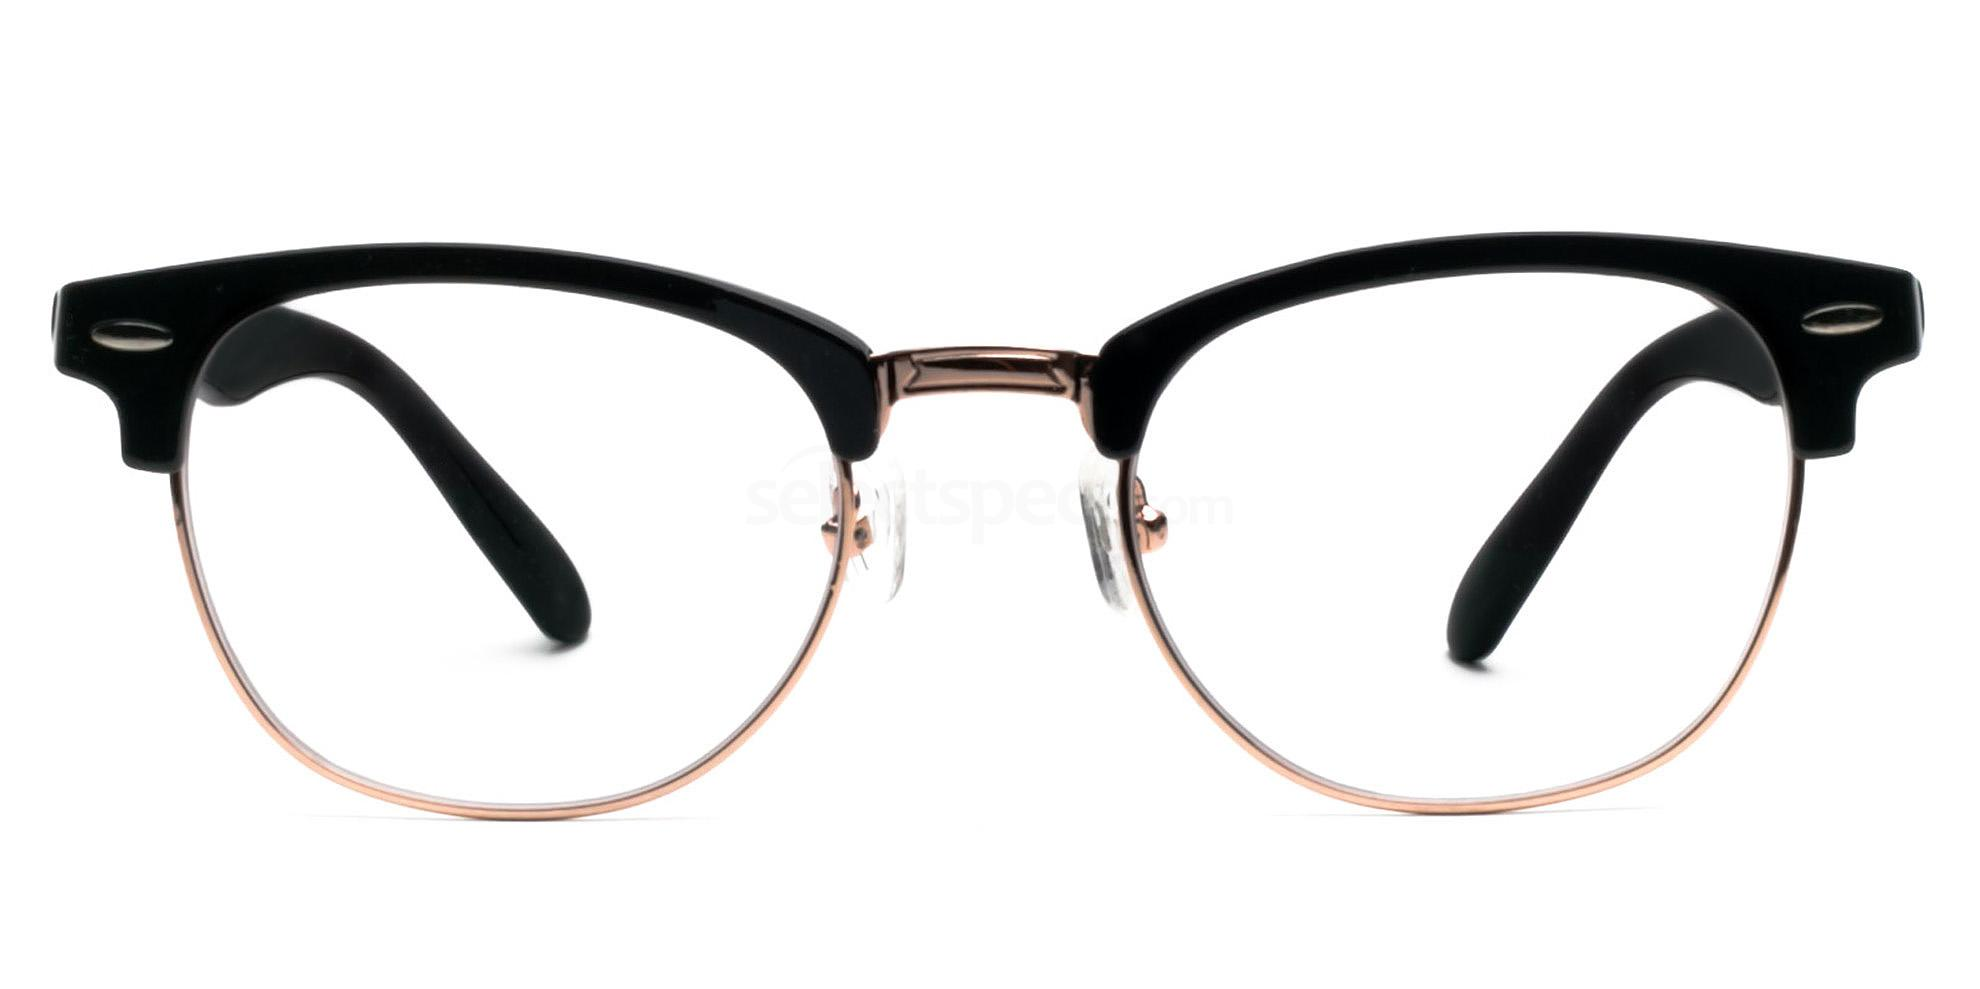 hipster horn rimmed glasses cheap online uk